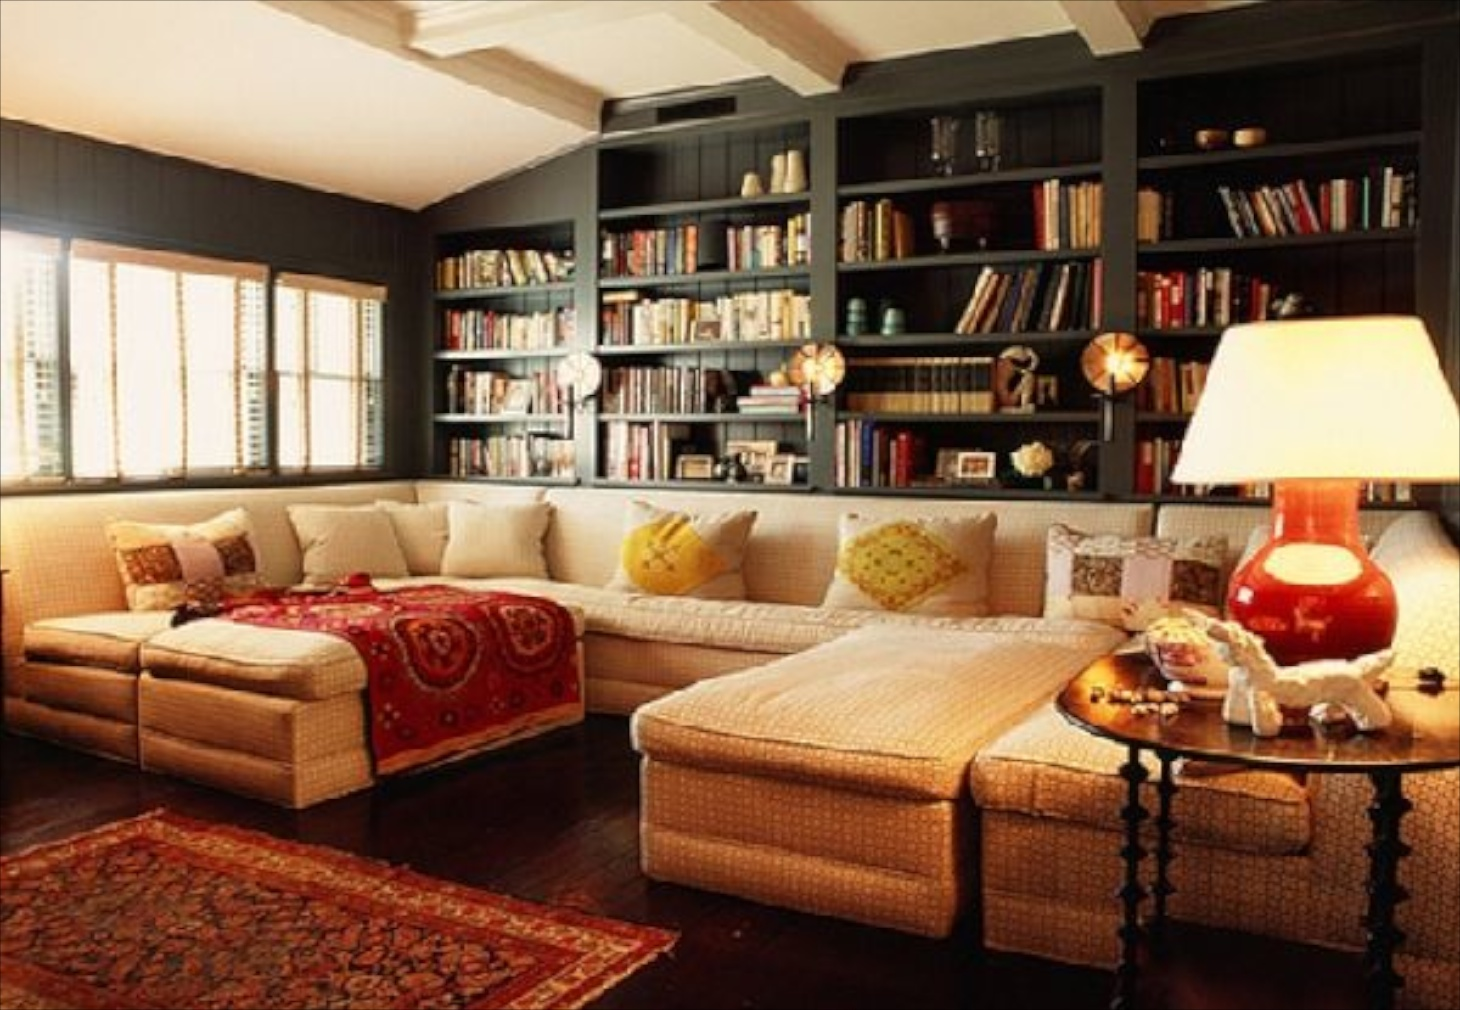 23_Sofas-and-Bookcase-Ideas-in-Cozy-Living-Room-Design